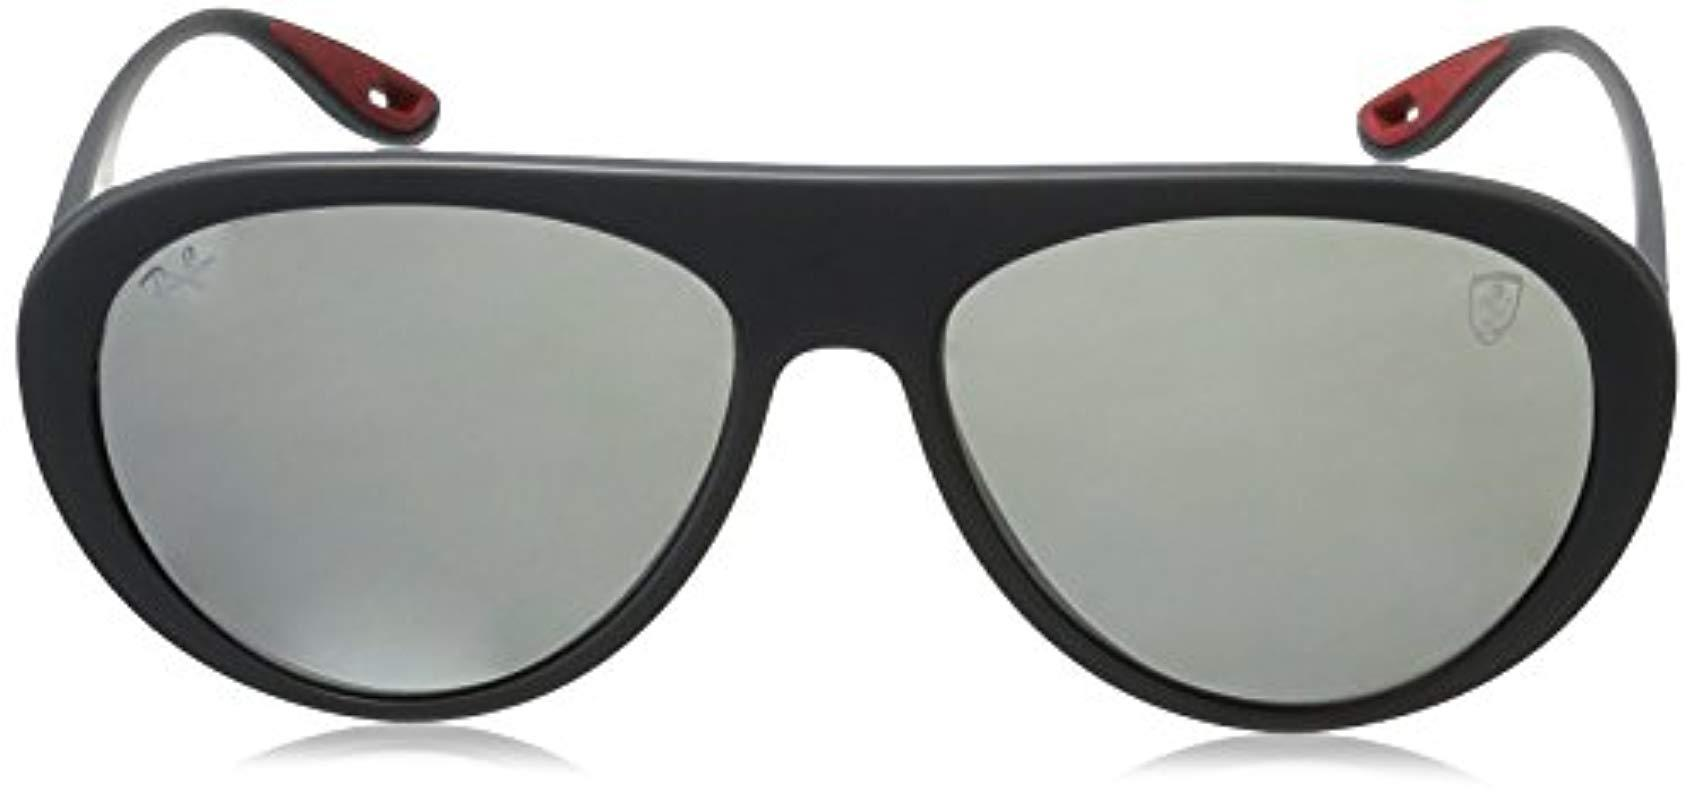 fccb61184d Lyst - Ray-Ban Rb4310m 59 Sunglasses 59mm in Gray for Men - Save 47%